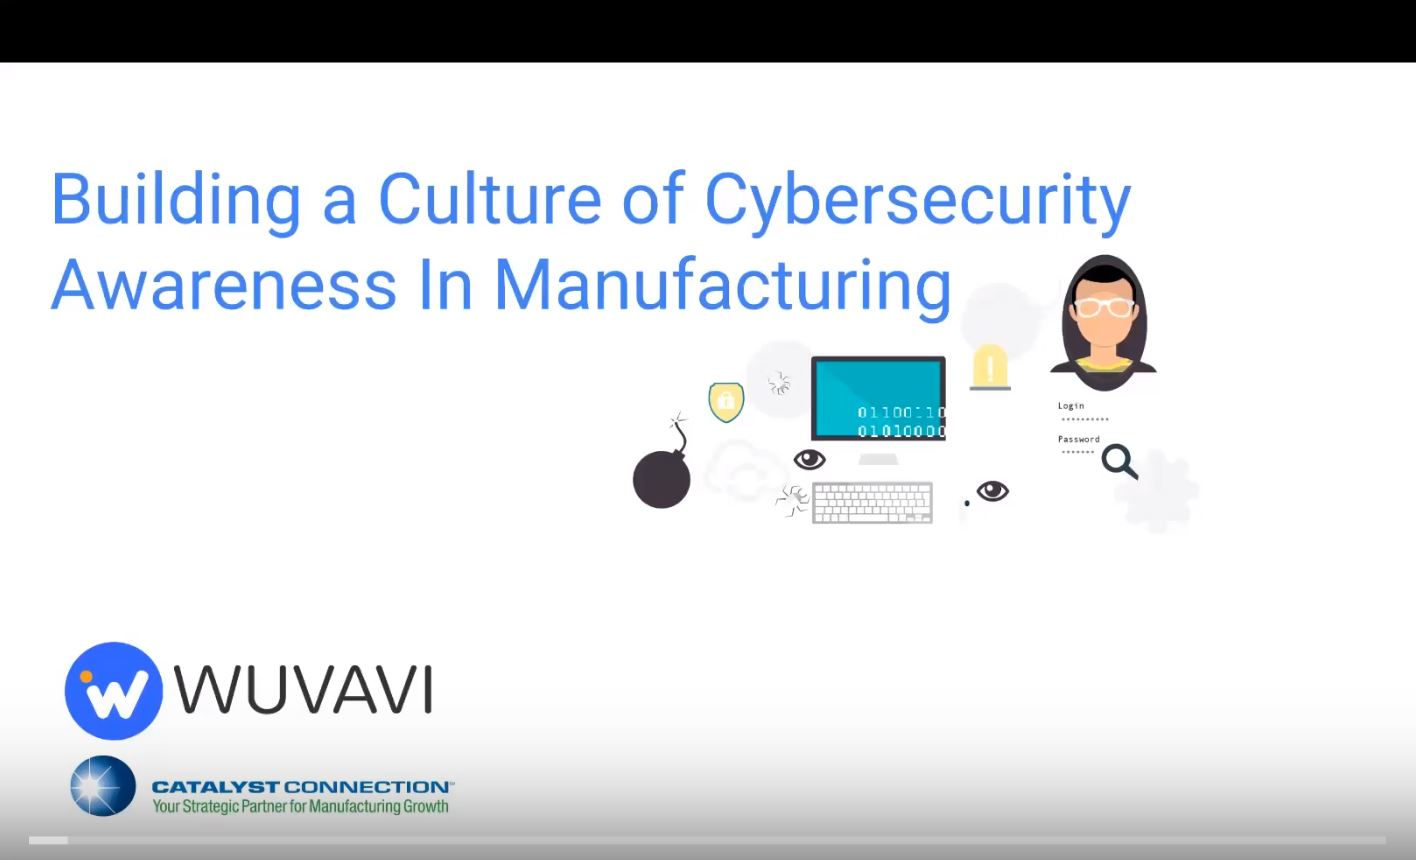 Building a Culture of Cybersecurity Awareness for Employees in Manufacturing